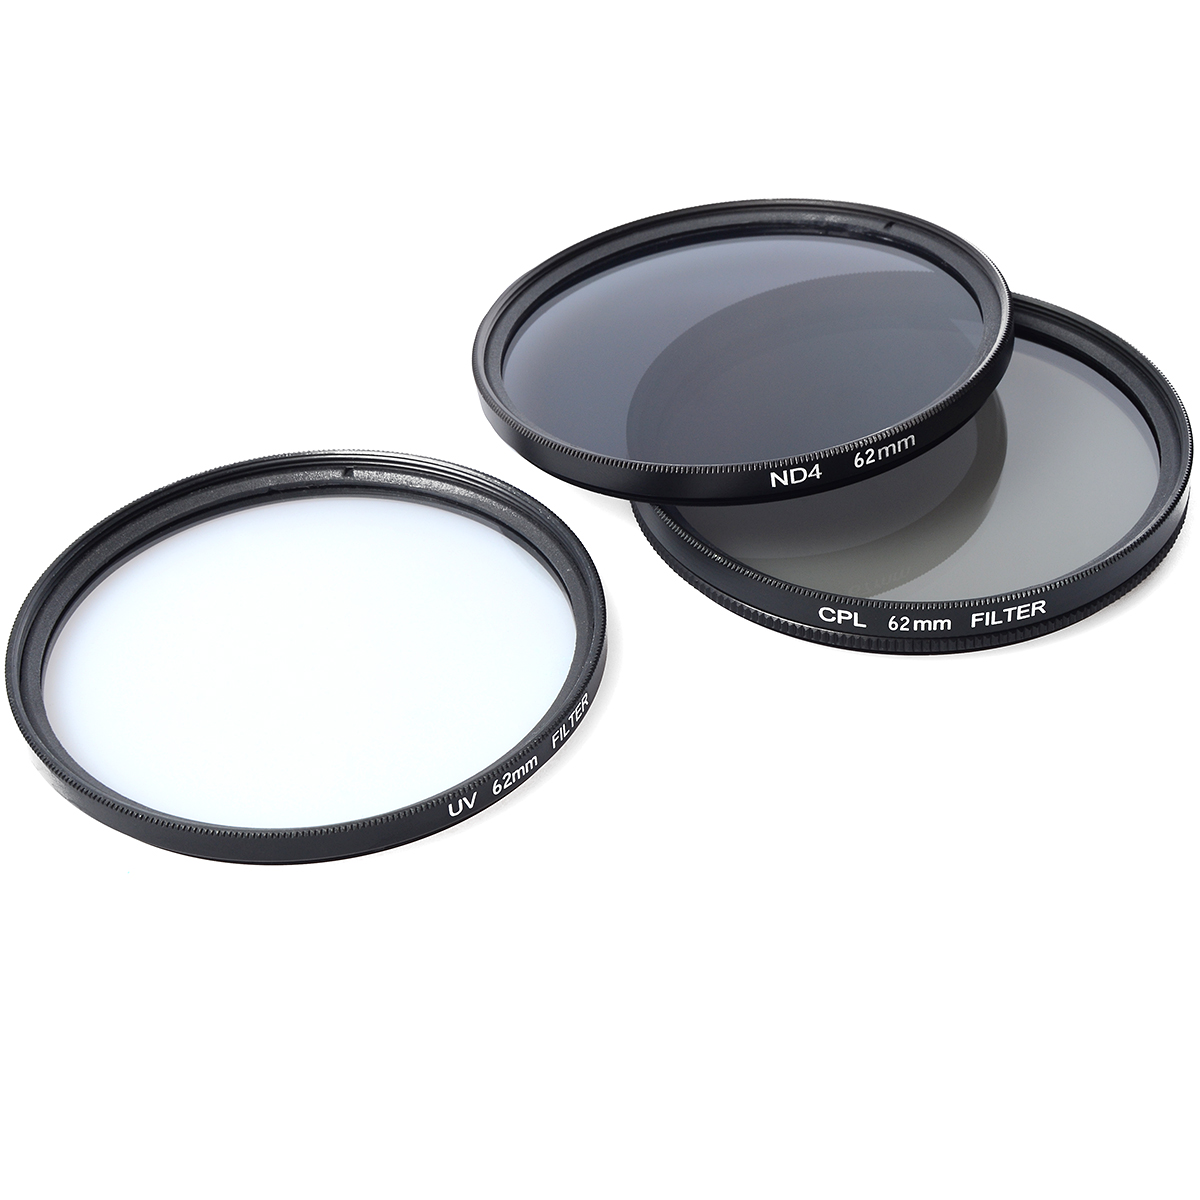 62mm uv cpl nd4 circulare polarisant objectif filtre parasoleil pour nikon lf283 ebay. Black Bedroom Furniture Sets. Home Design Ideas